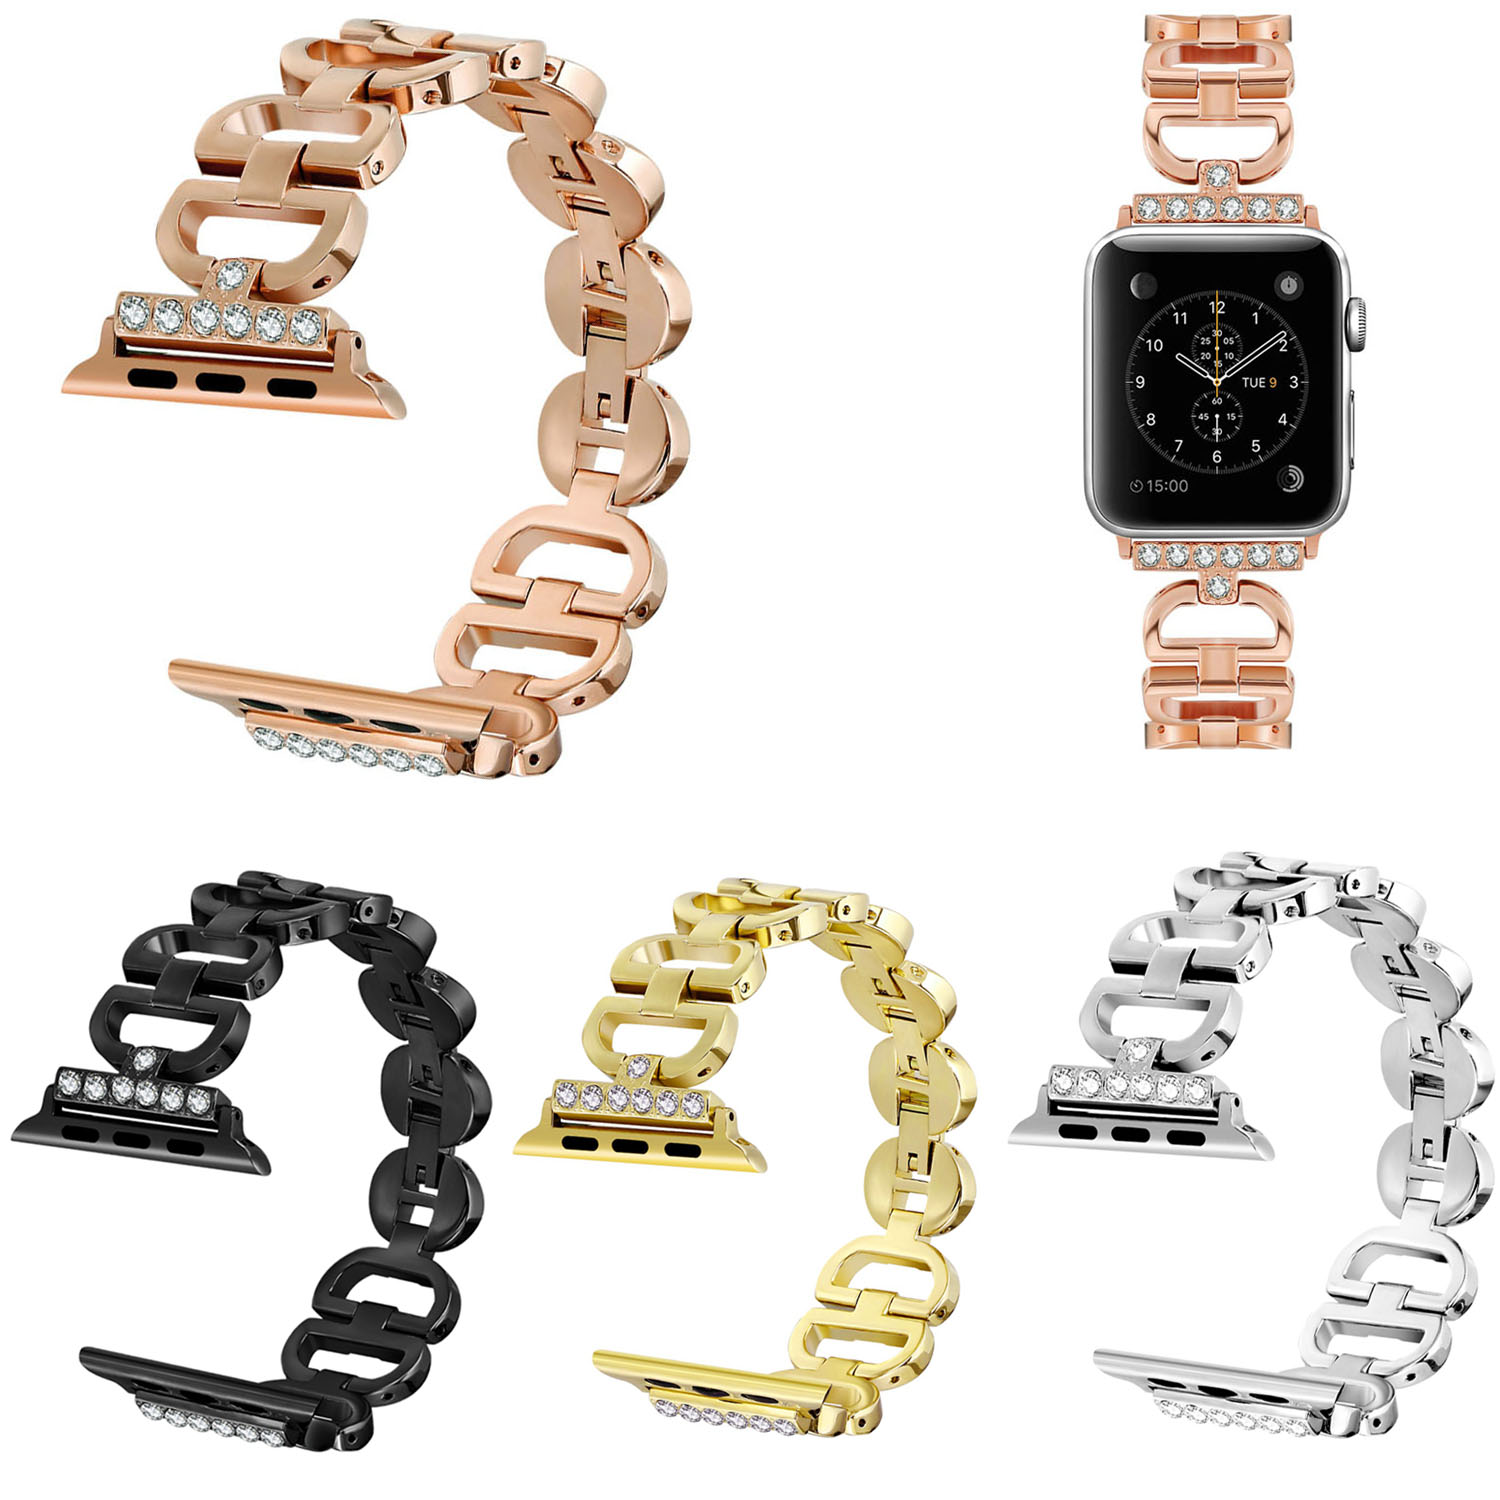 Diamond Stainless Steel Band For Apple Watch Strap iWatch Series 1/2/3 Rhinestone Bracelet 38mm 42mm Replacement Watchbands